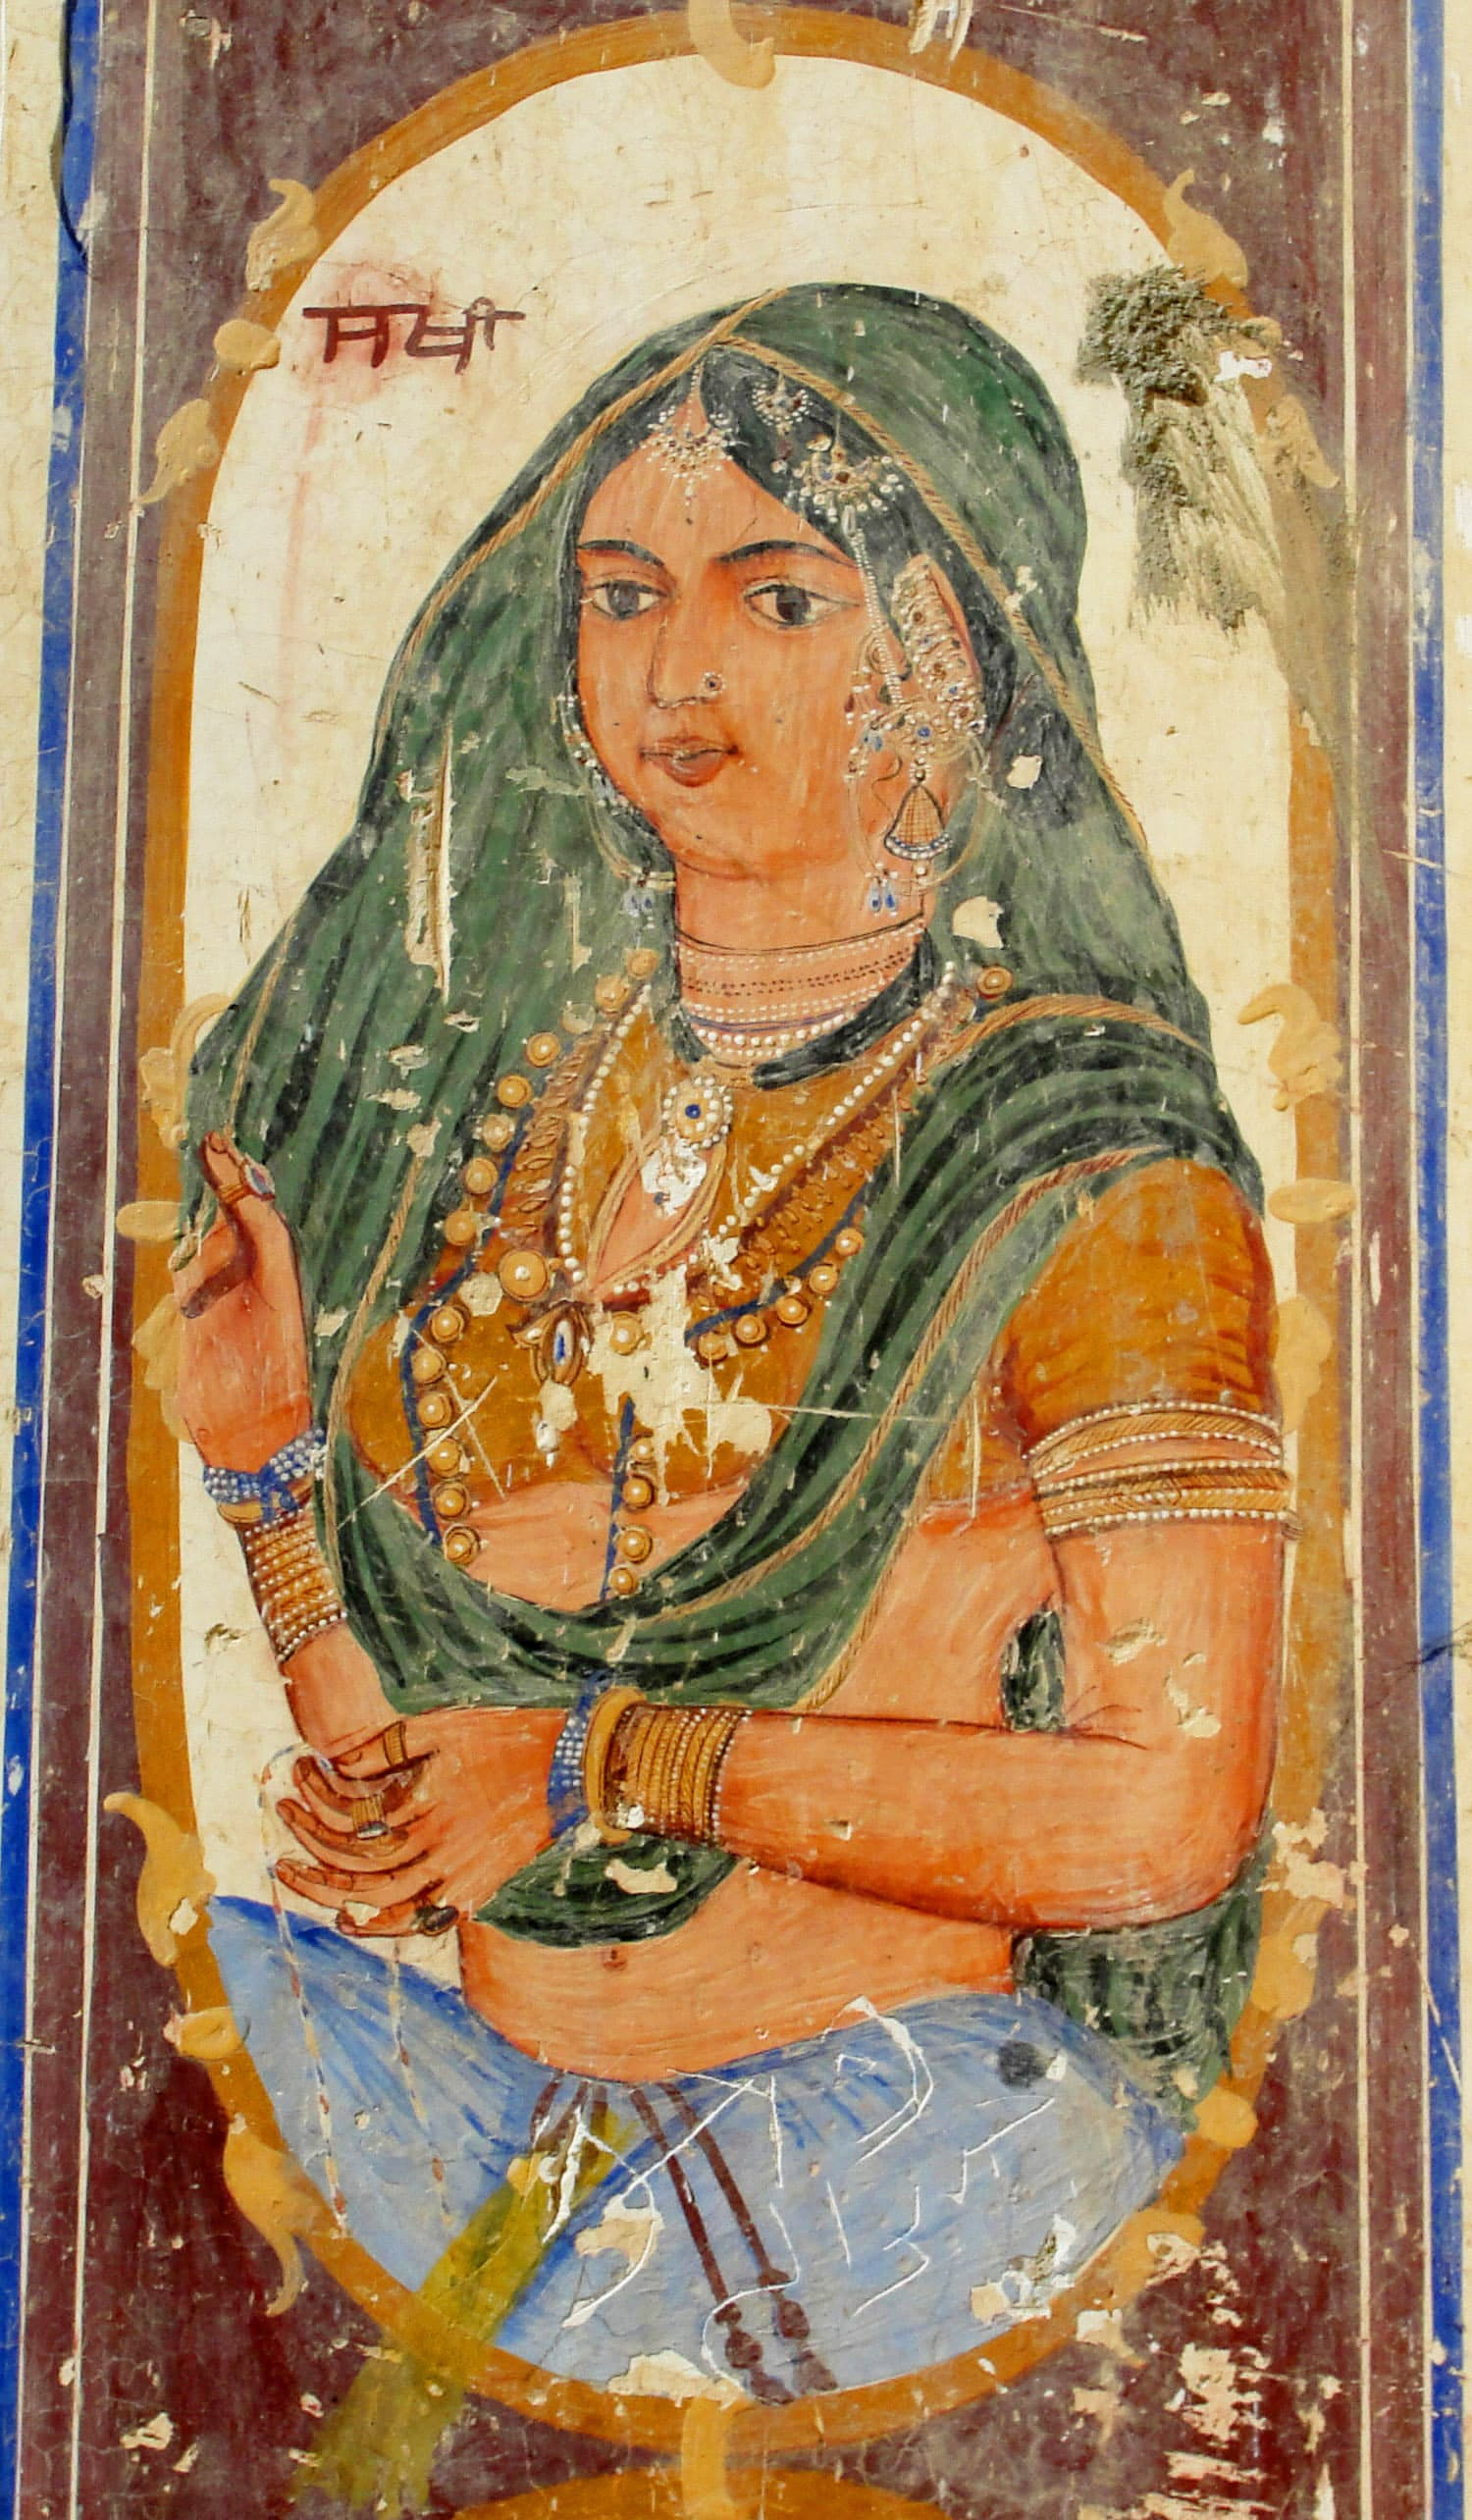 Depiction of a Sikh woman.